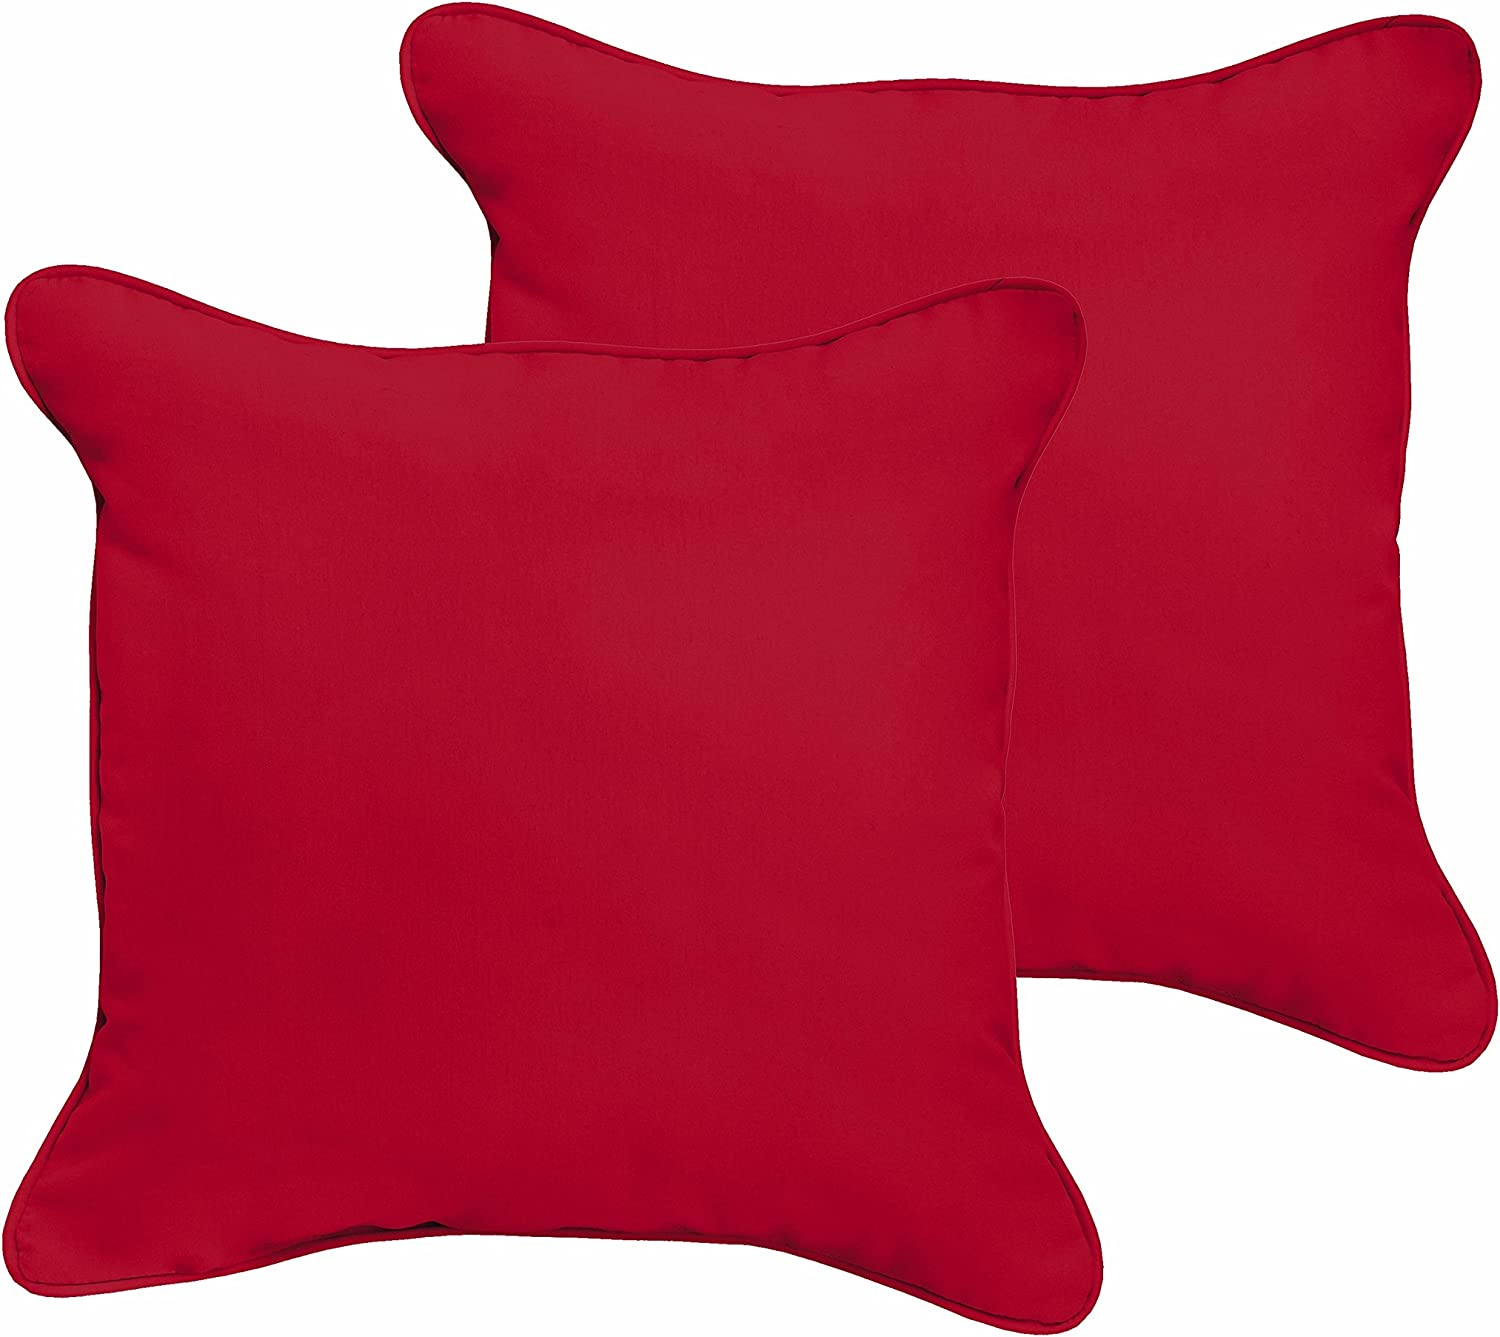 Mozaic Company AZPS8507 Indoor Outdoor Corded San Antonio Mall Minneapolis Mall with Pillow Square